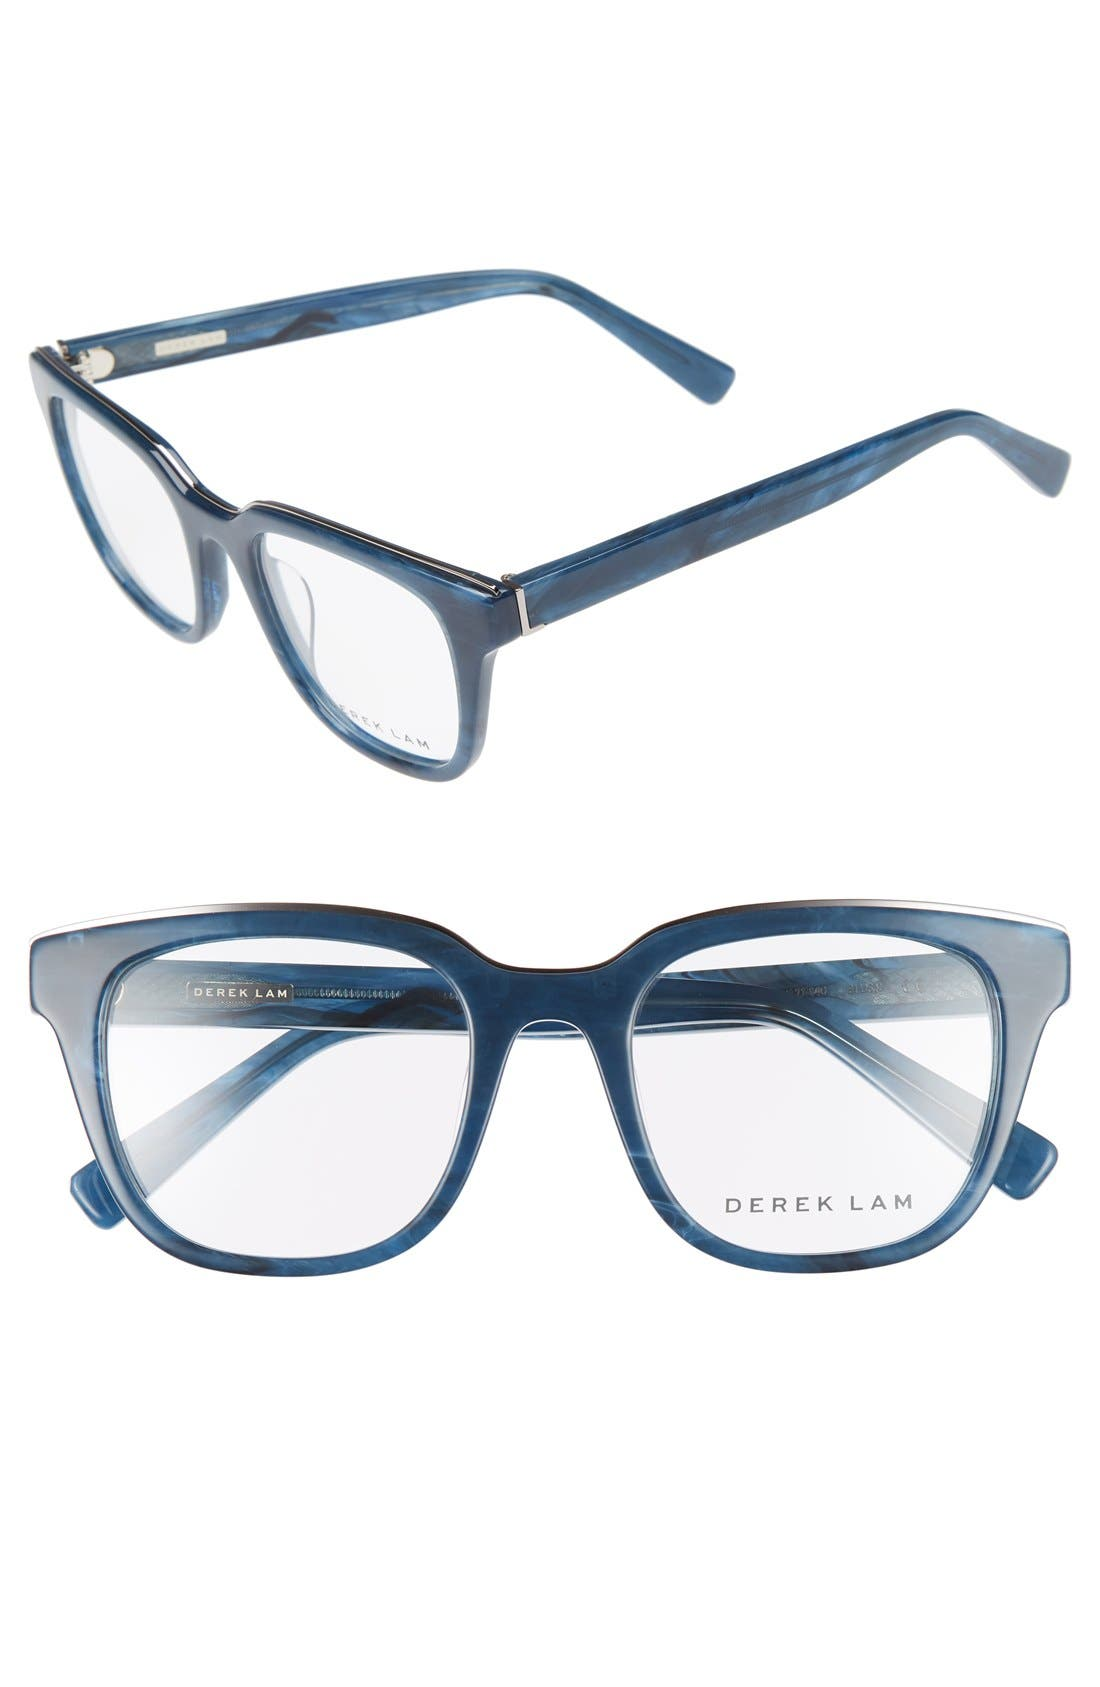 50mm Optical Glasses,                         Main,                         color, Blue Stone